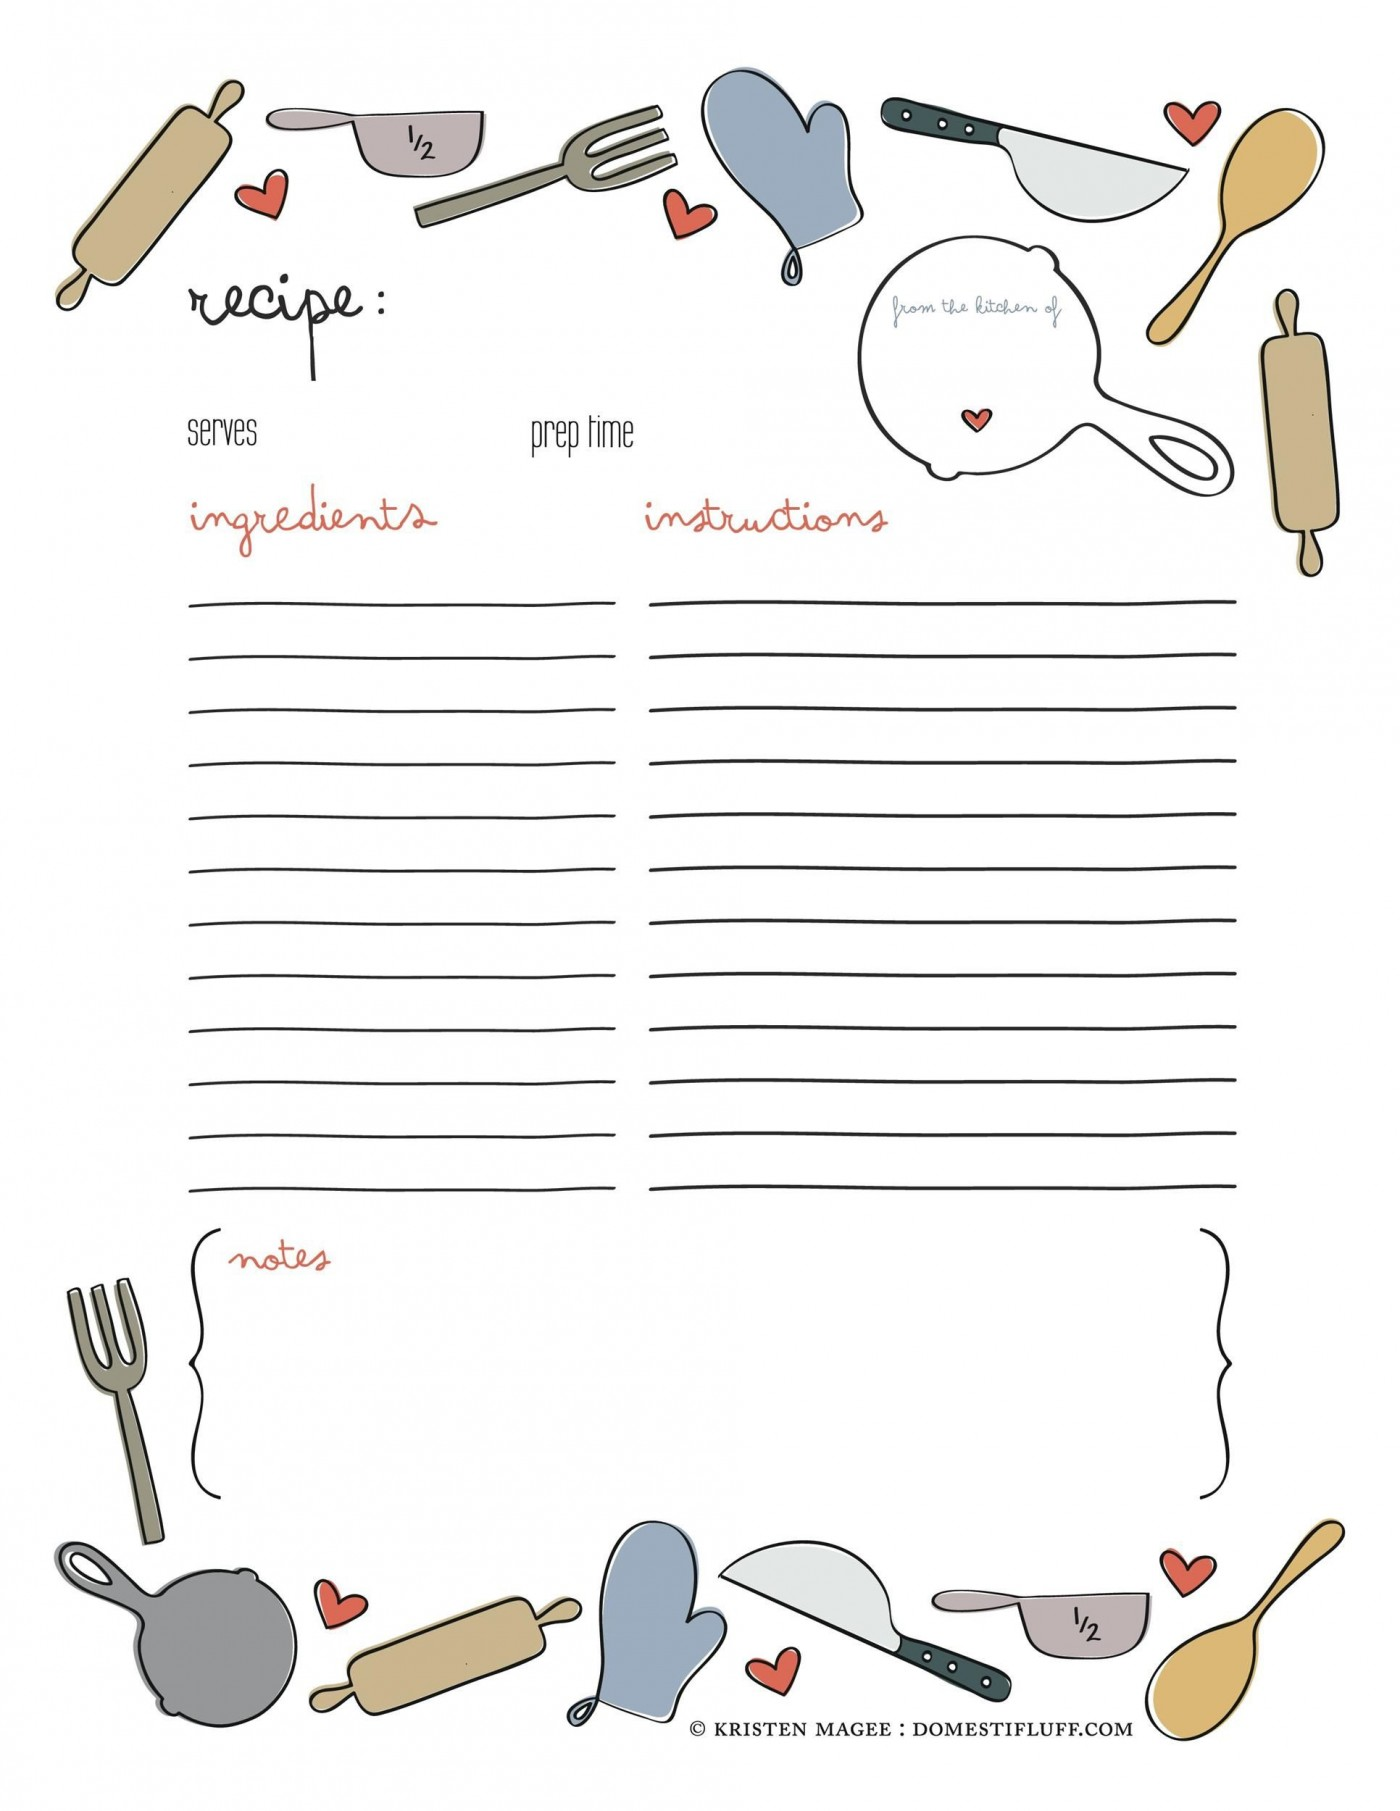 008 Remarkable Free Make Your Own Cookbook Template Download Photo 1400